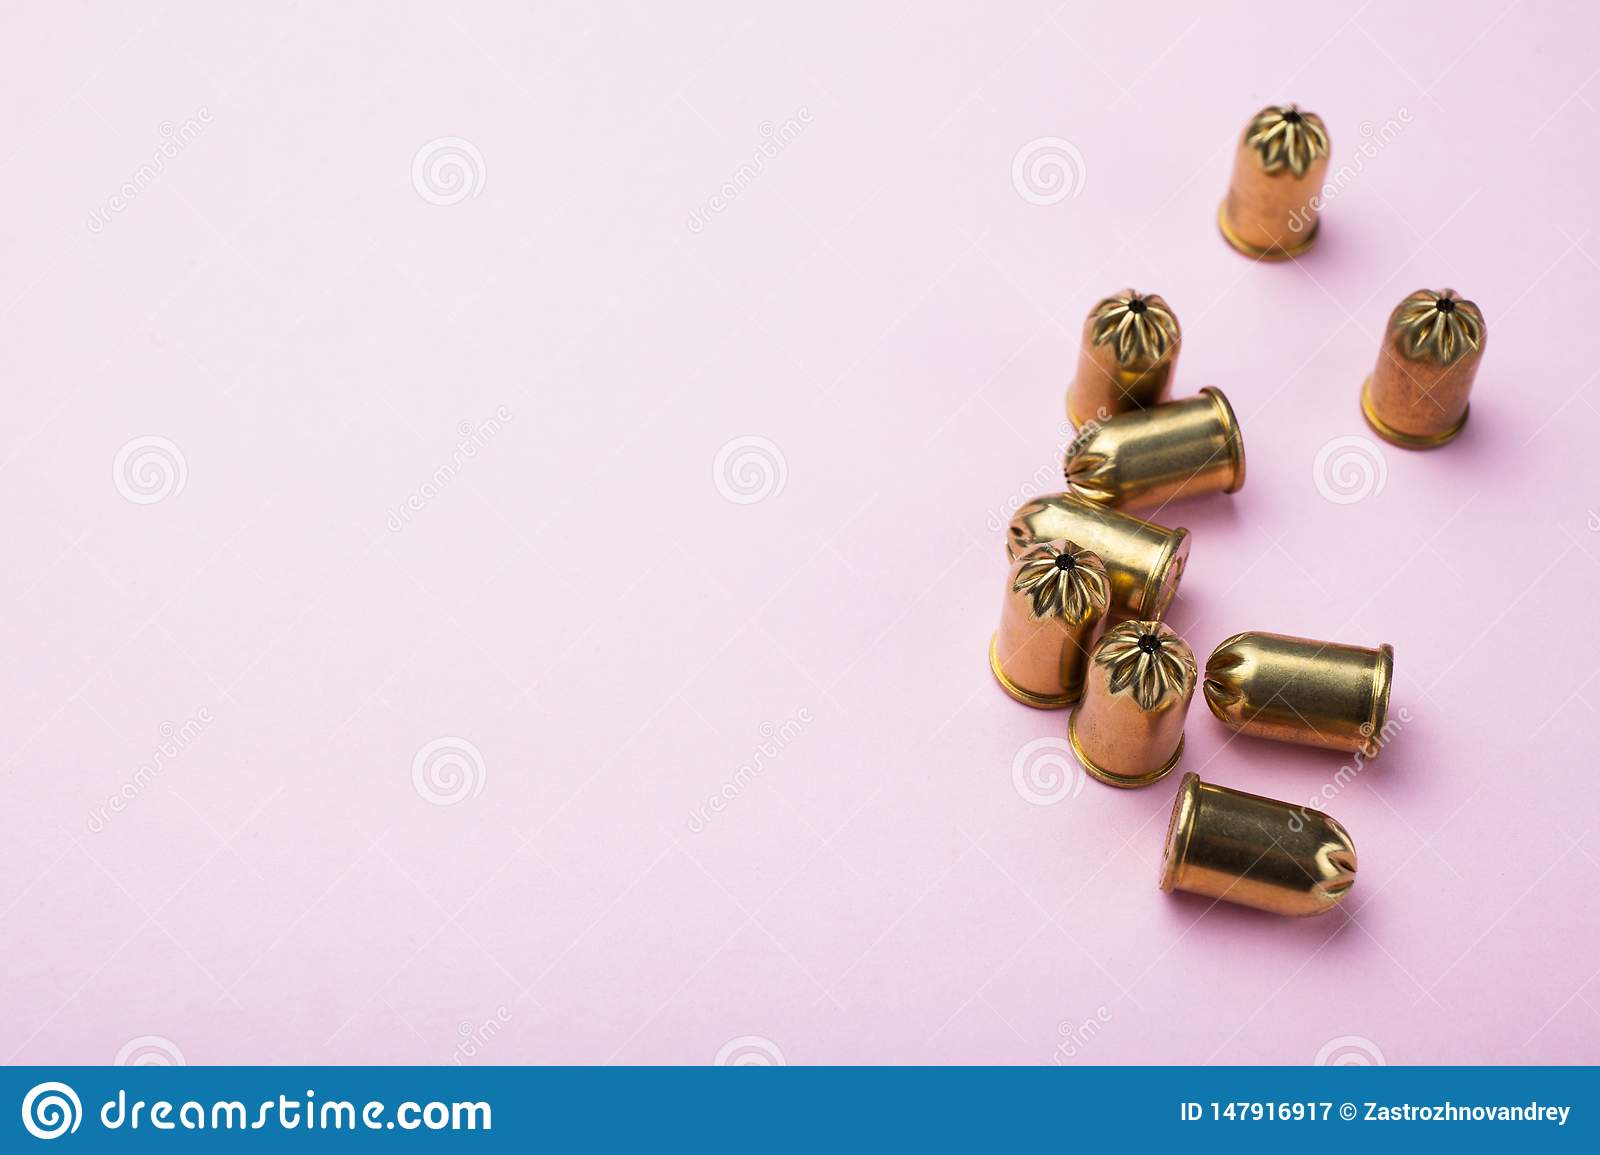 Gold vintage bullets on a pink background, blank space for text